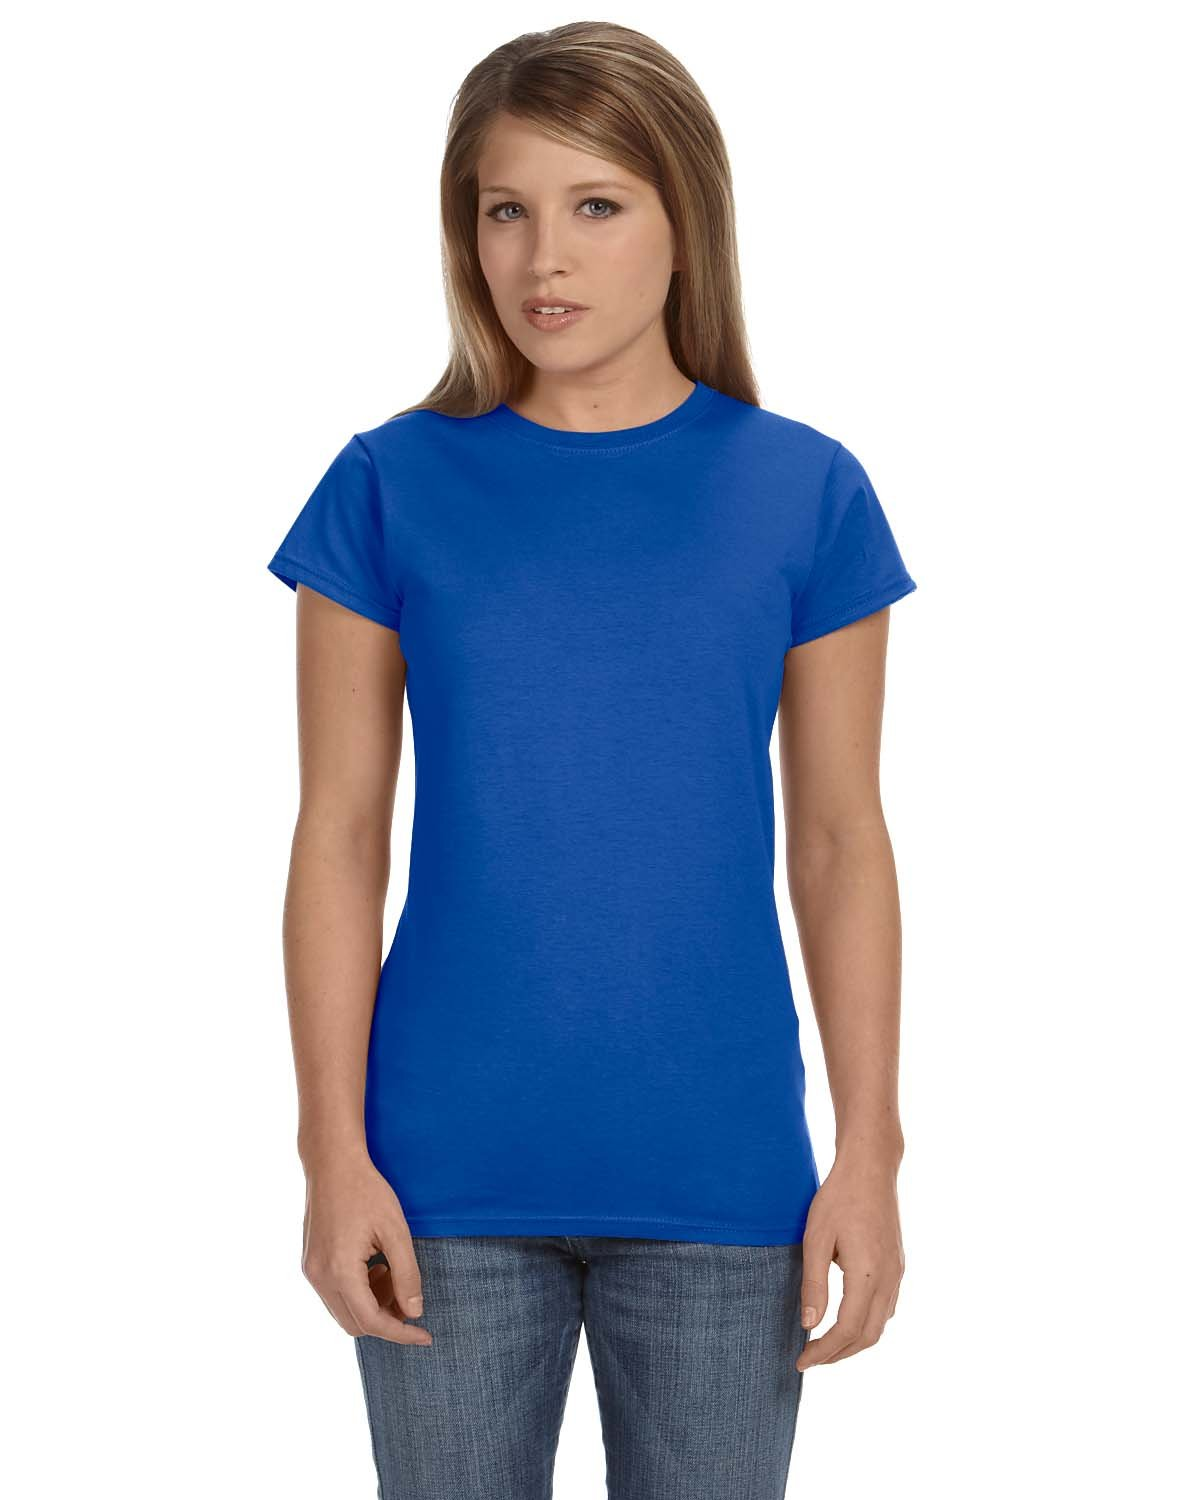 Gildan Ladies' Softstyle® 4.5 oz Fitted T-Shirt ROYAL